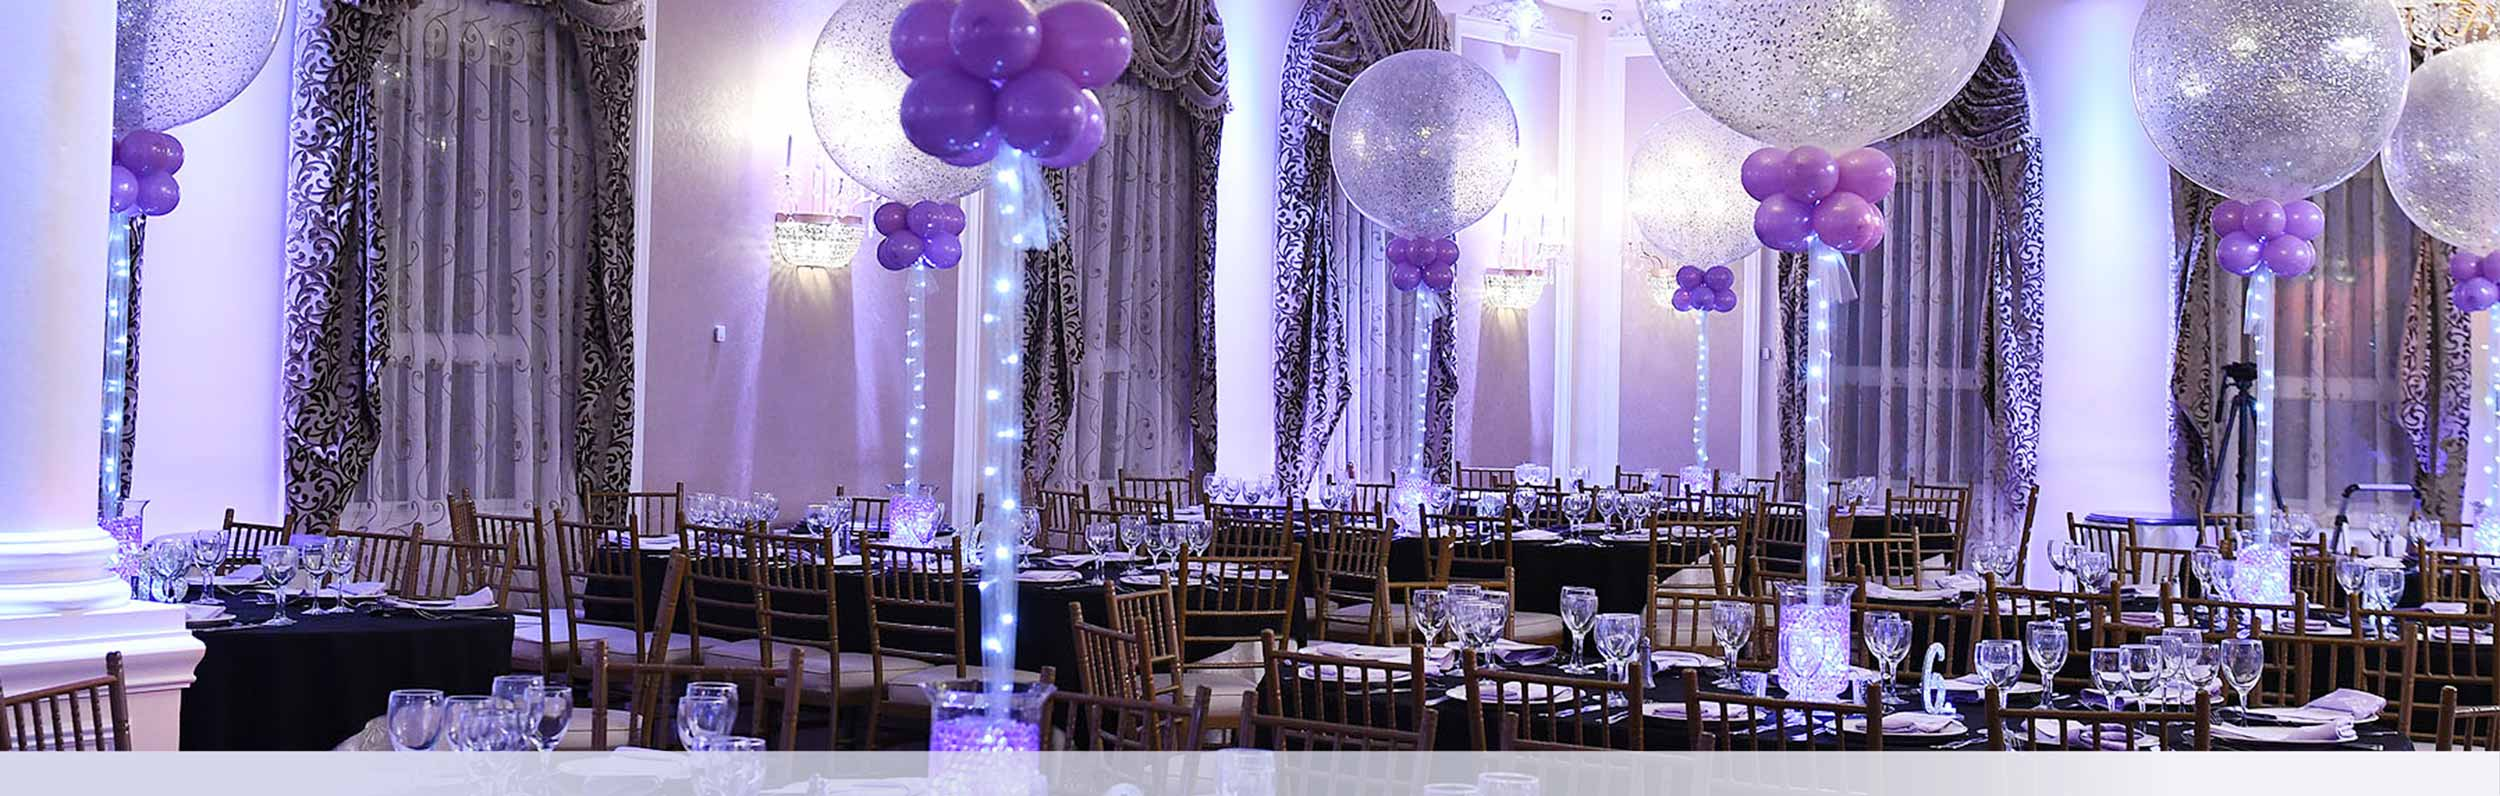 Mitzvah Banner 3 Purple Table Setup Balloons